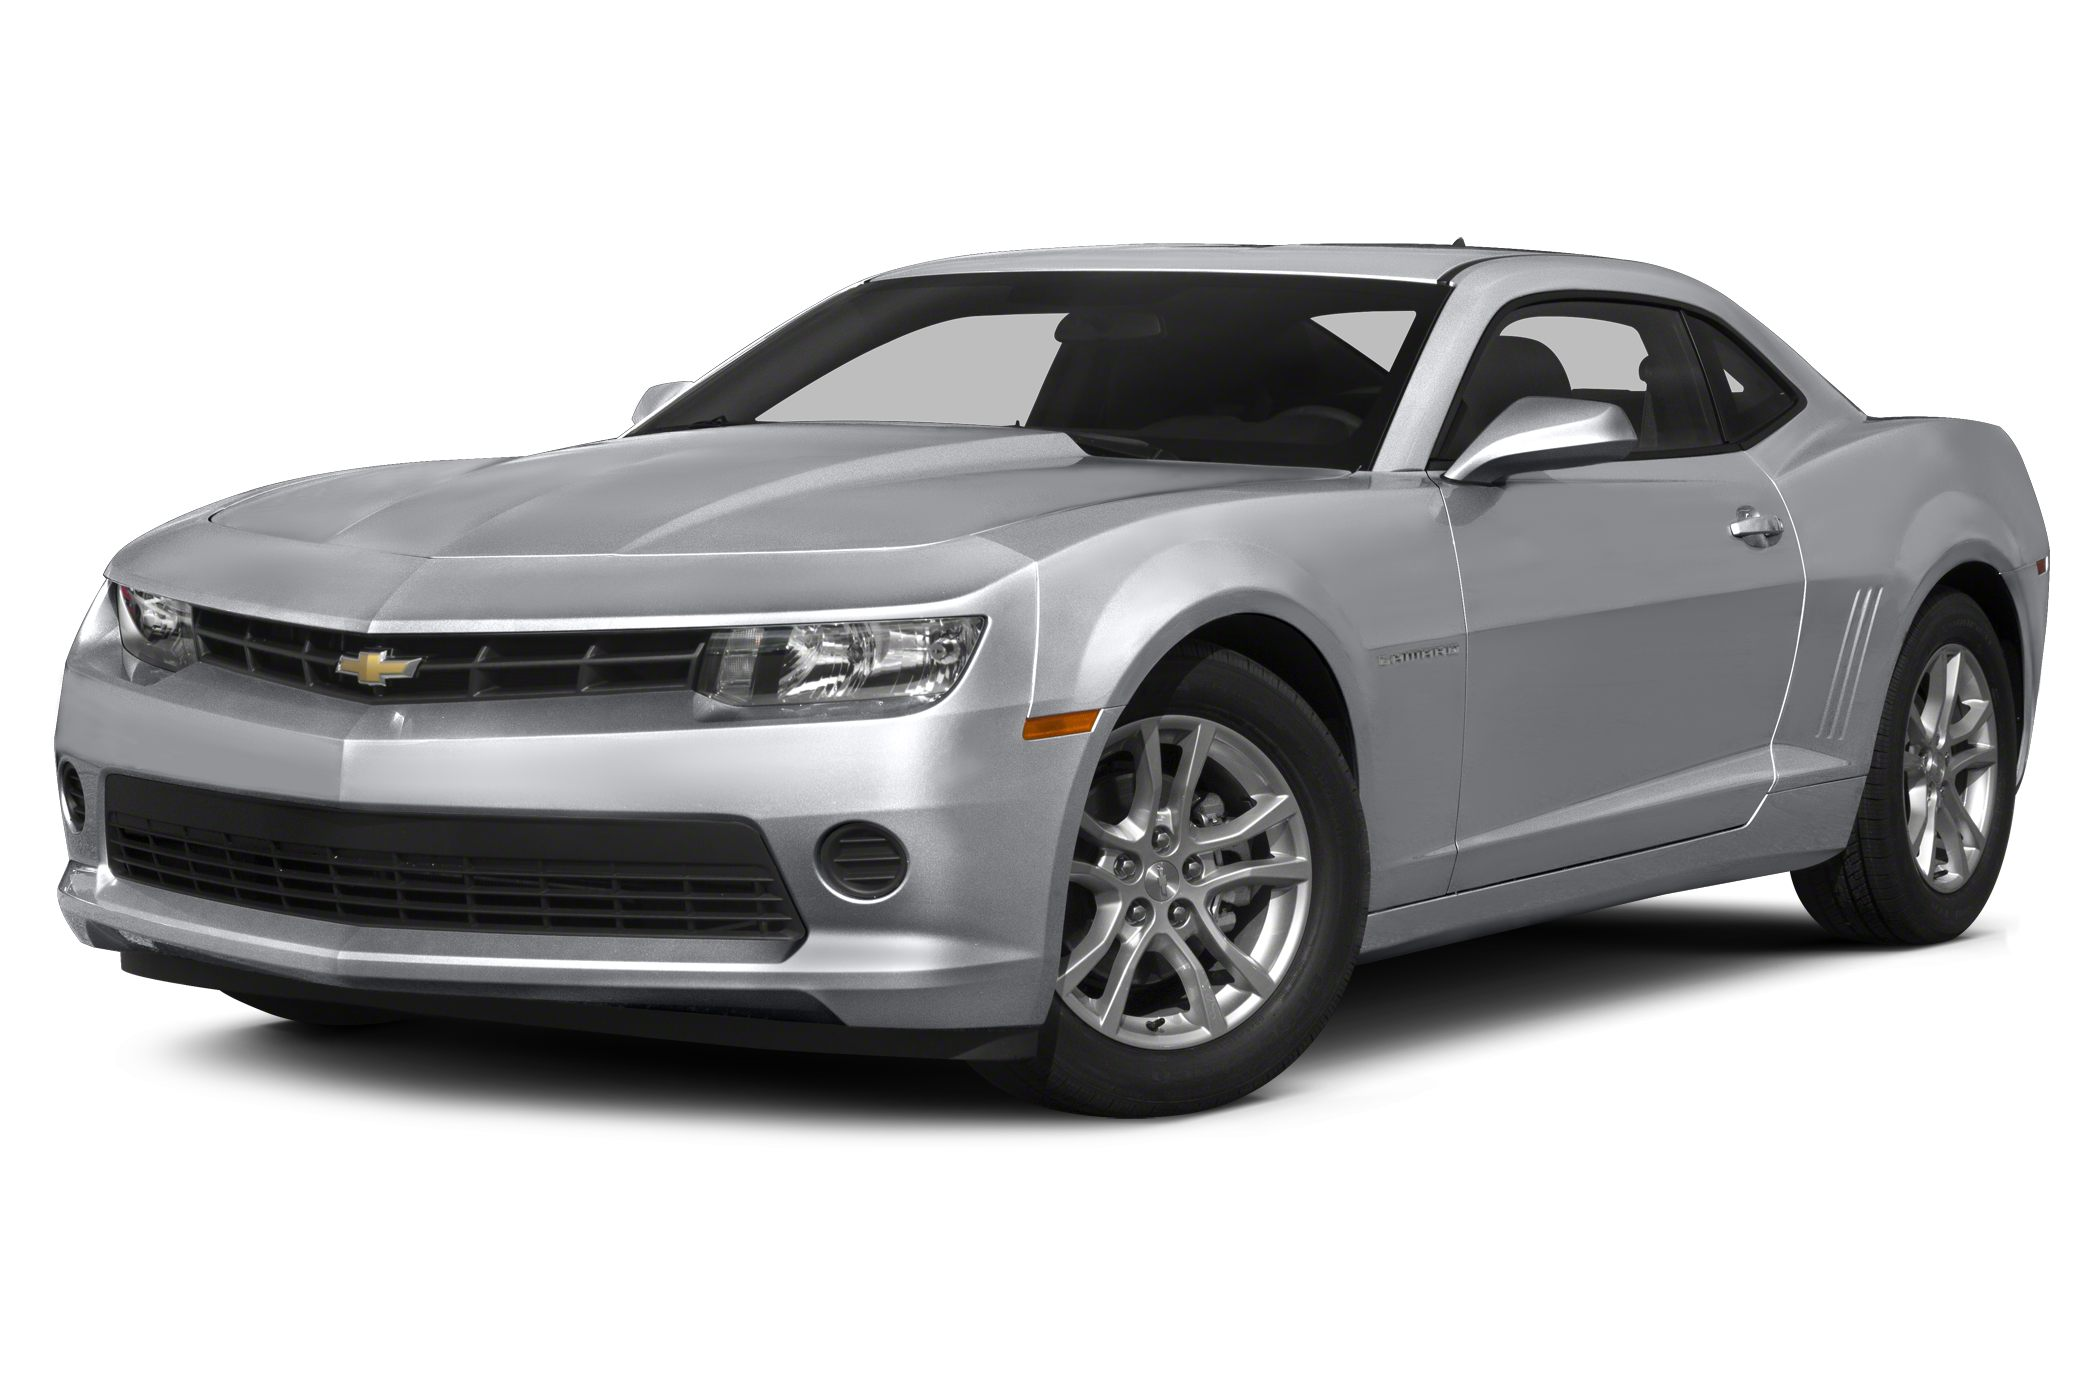 2015 Chevrolet Camaro 2LS Coupe for sale in Gadsden for $26,305 with 0 miles